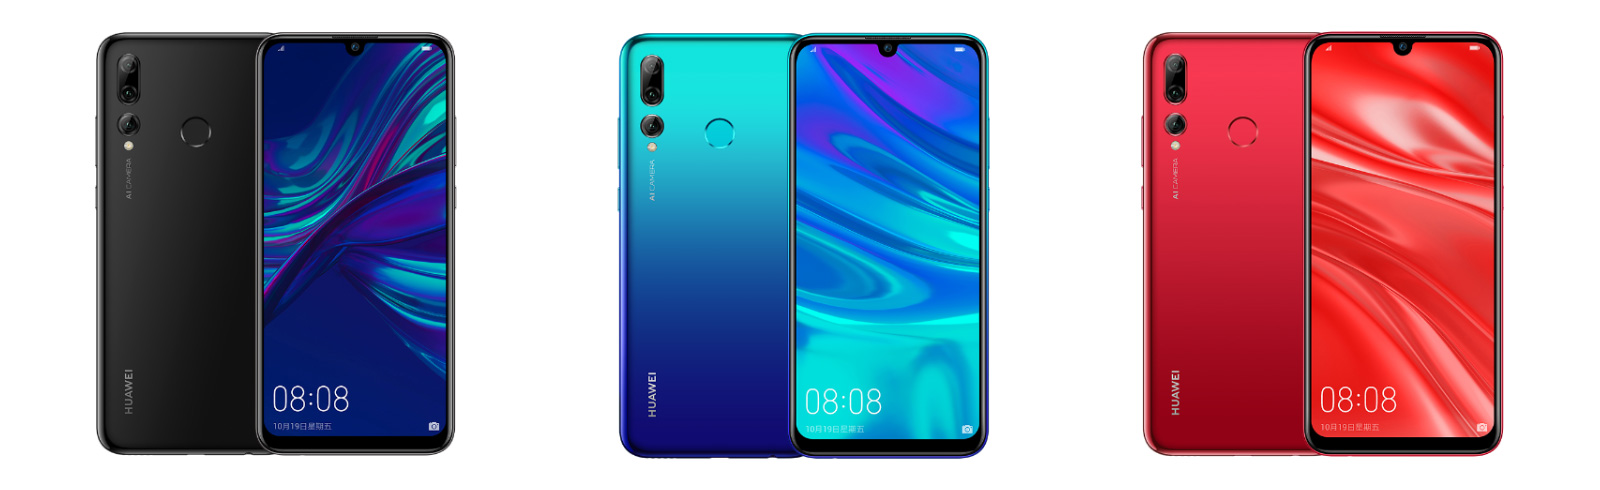 Huawei launches the Enjoy 9s and the Enjoy 9e